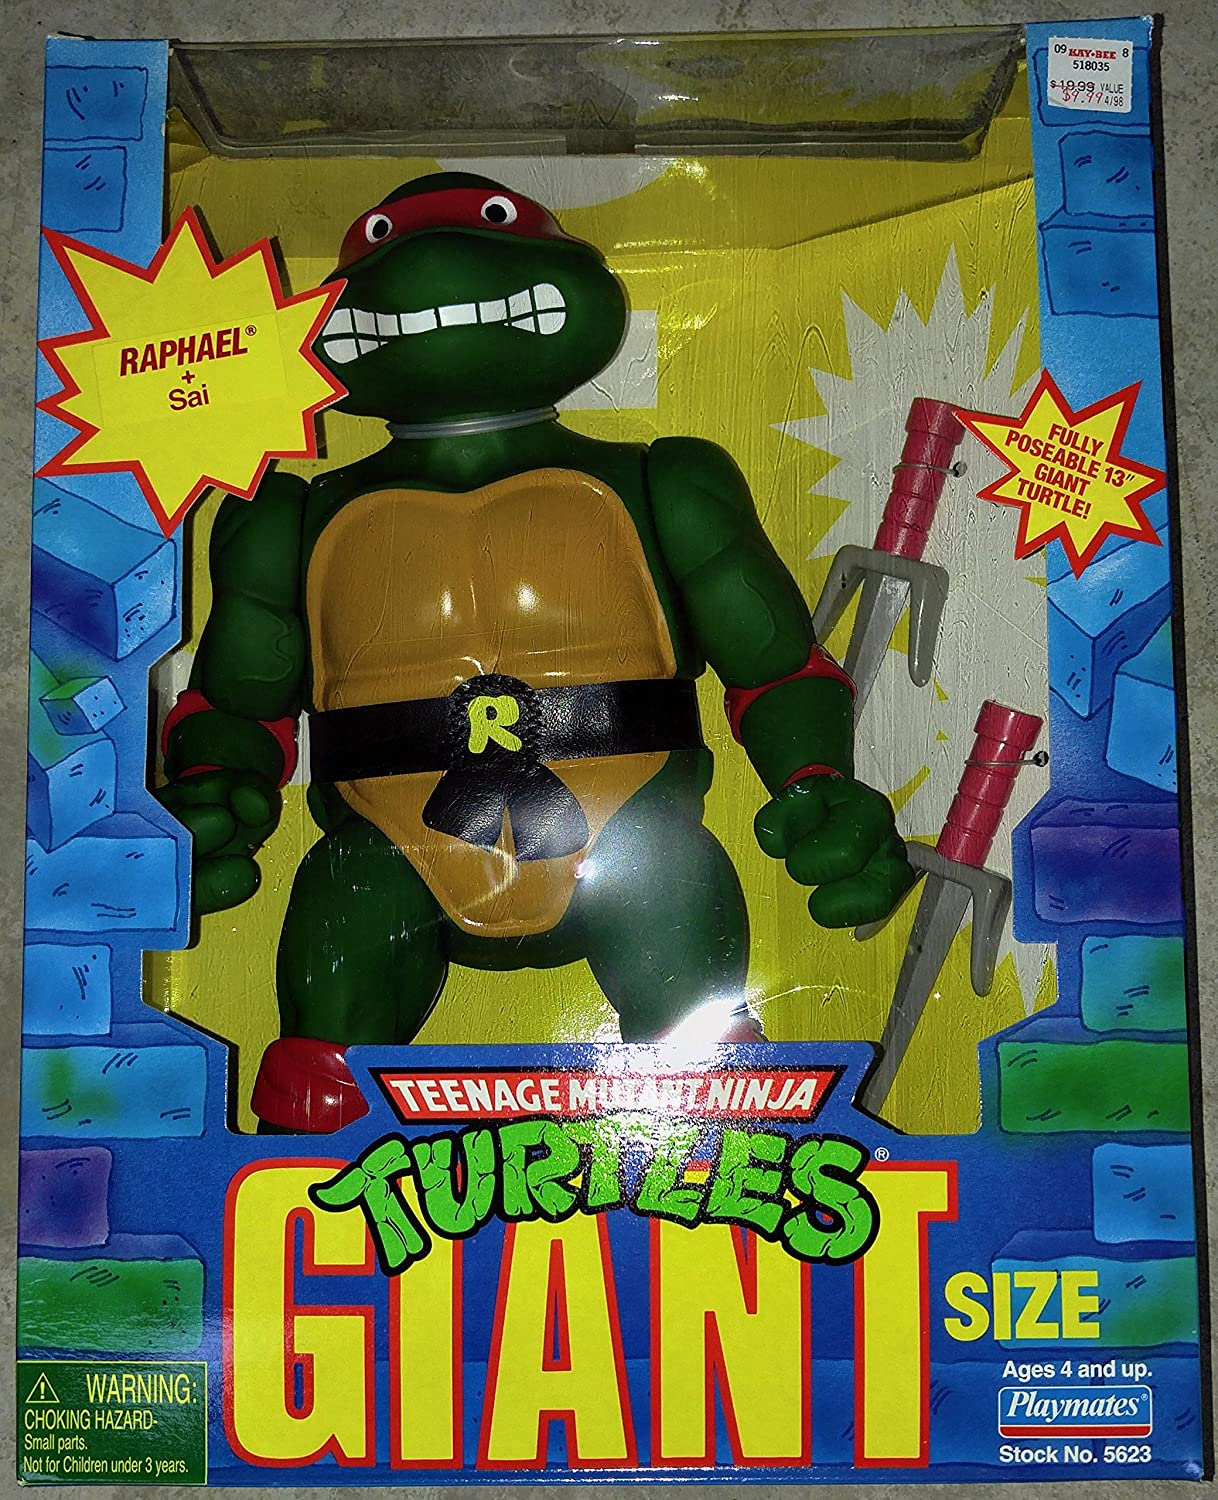 Sai 13 Inch Posable by Playmates Teenage Mutant Ninja Turtles Giant Size Raphael